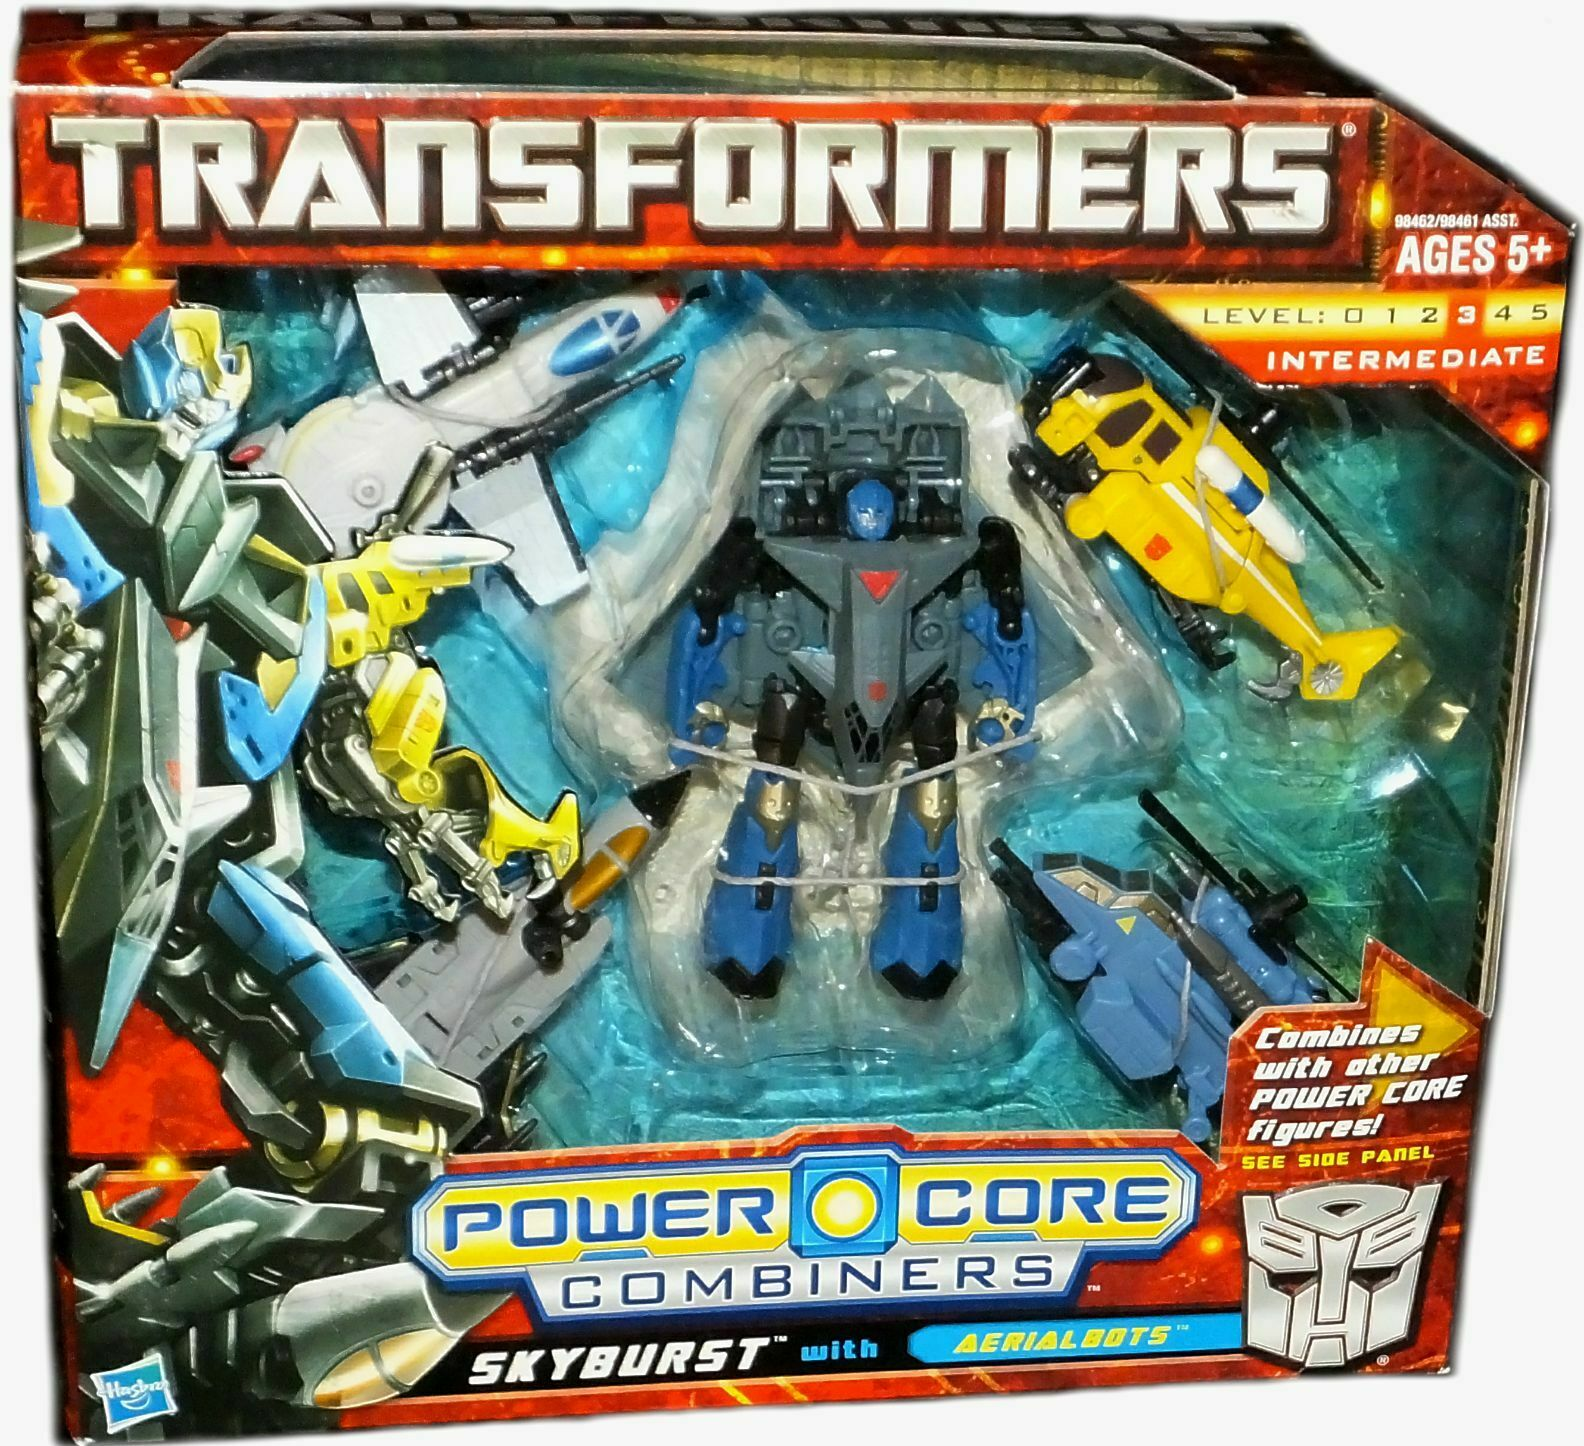 Transformers Power Core Combiners Skyburst with Aerialbots Factory Seal 2010 New